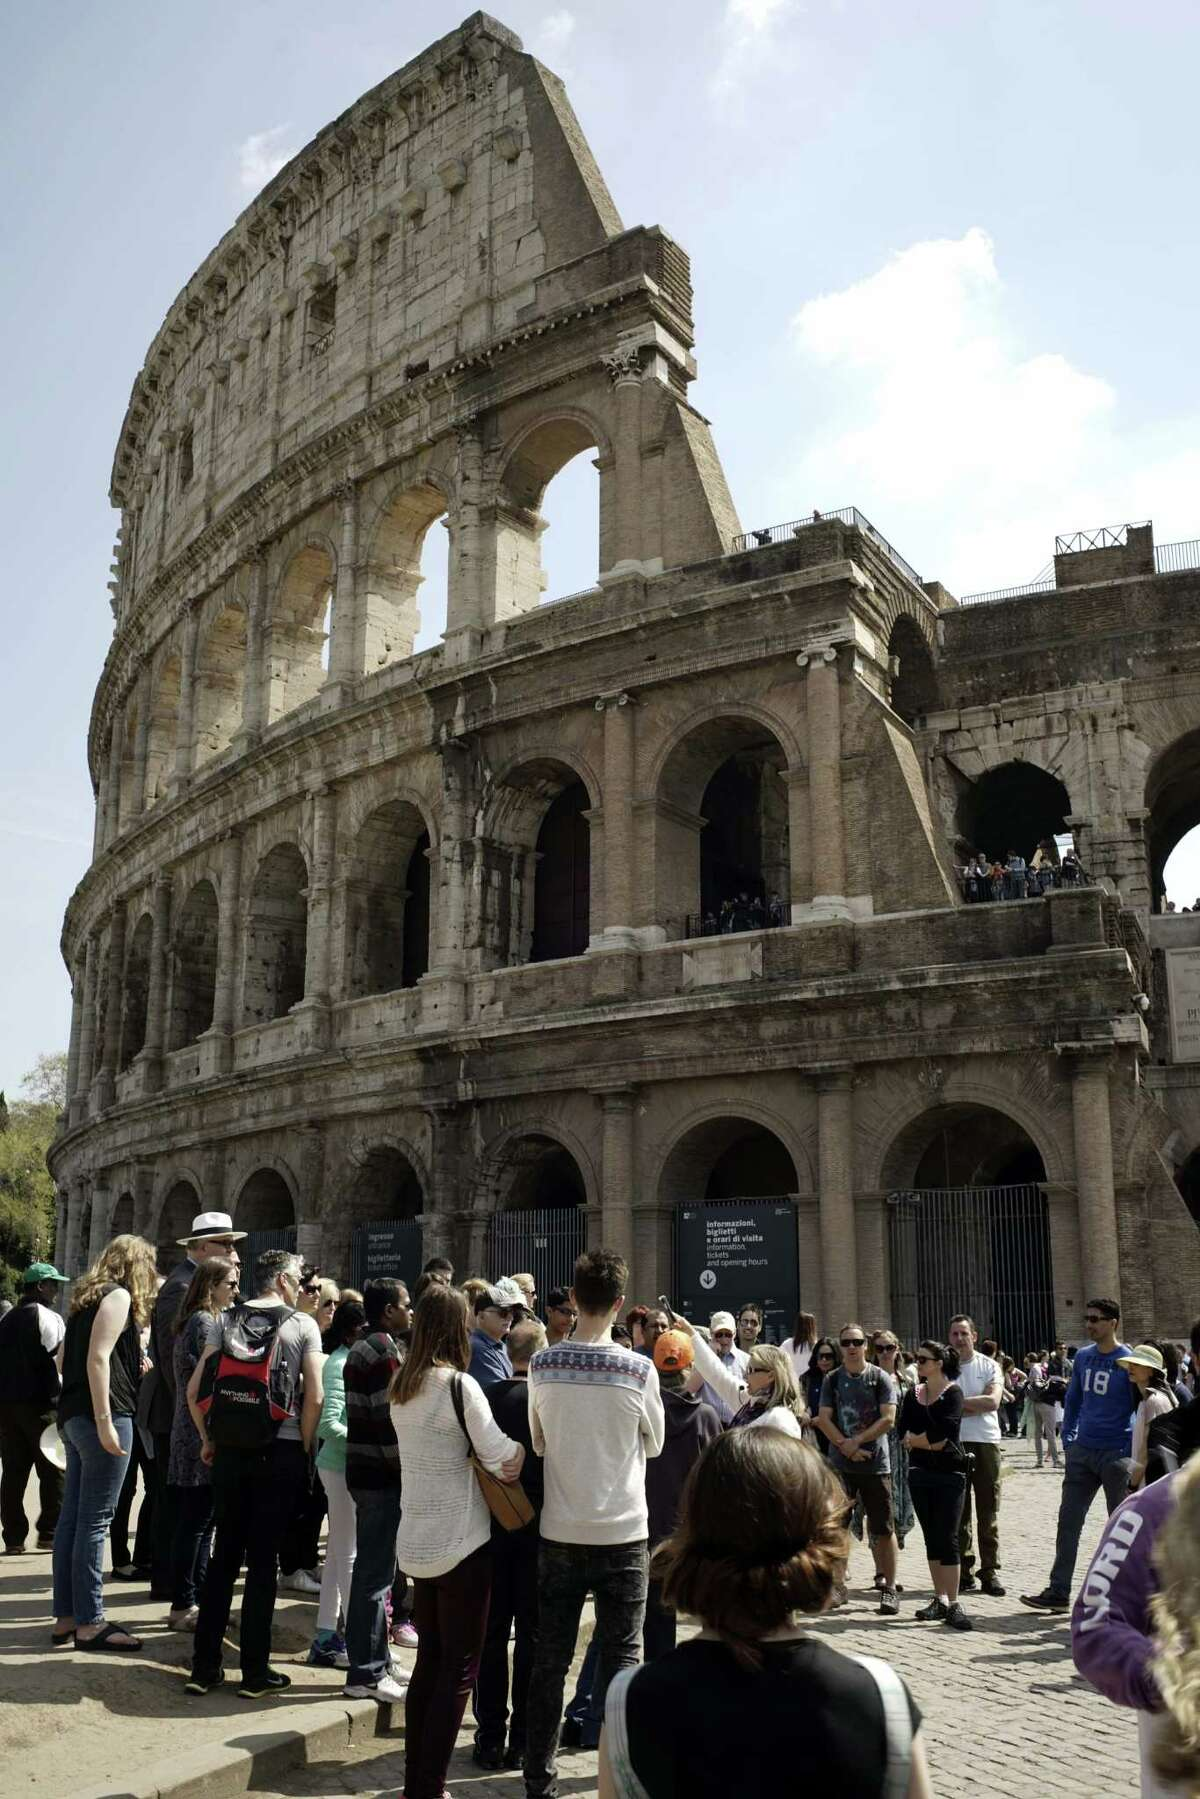 In this photo taken on Friday, April 10, 2015, people line up to enter the Colosseum, in Rome. Vacations in Europe have a new attraction: the euro's steep drop in value is making the continent much cheaper for tourists from across the world, especially the United States and China. For American tourists, the dollarís strength translates into a discount of around 25 percent compared with this time last year. Chinaís currency has risen some 20 percent against the euro over the past year. (AP Photo/Andrew Medichini)